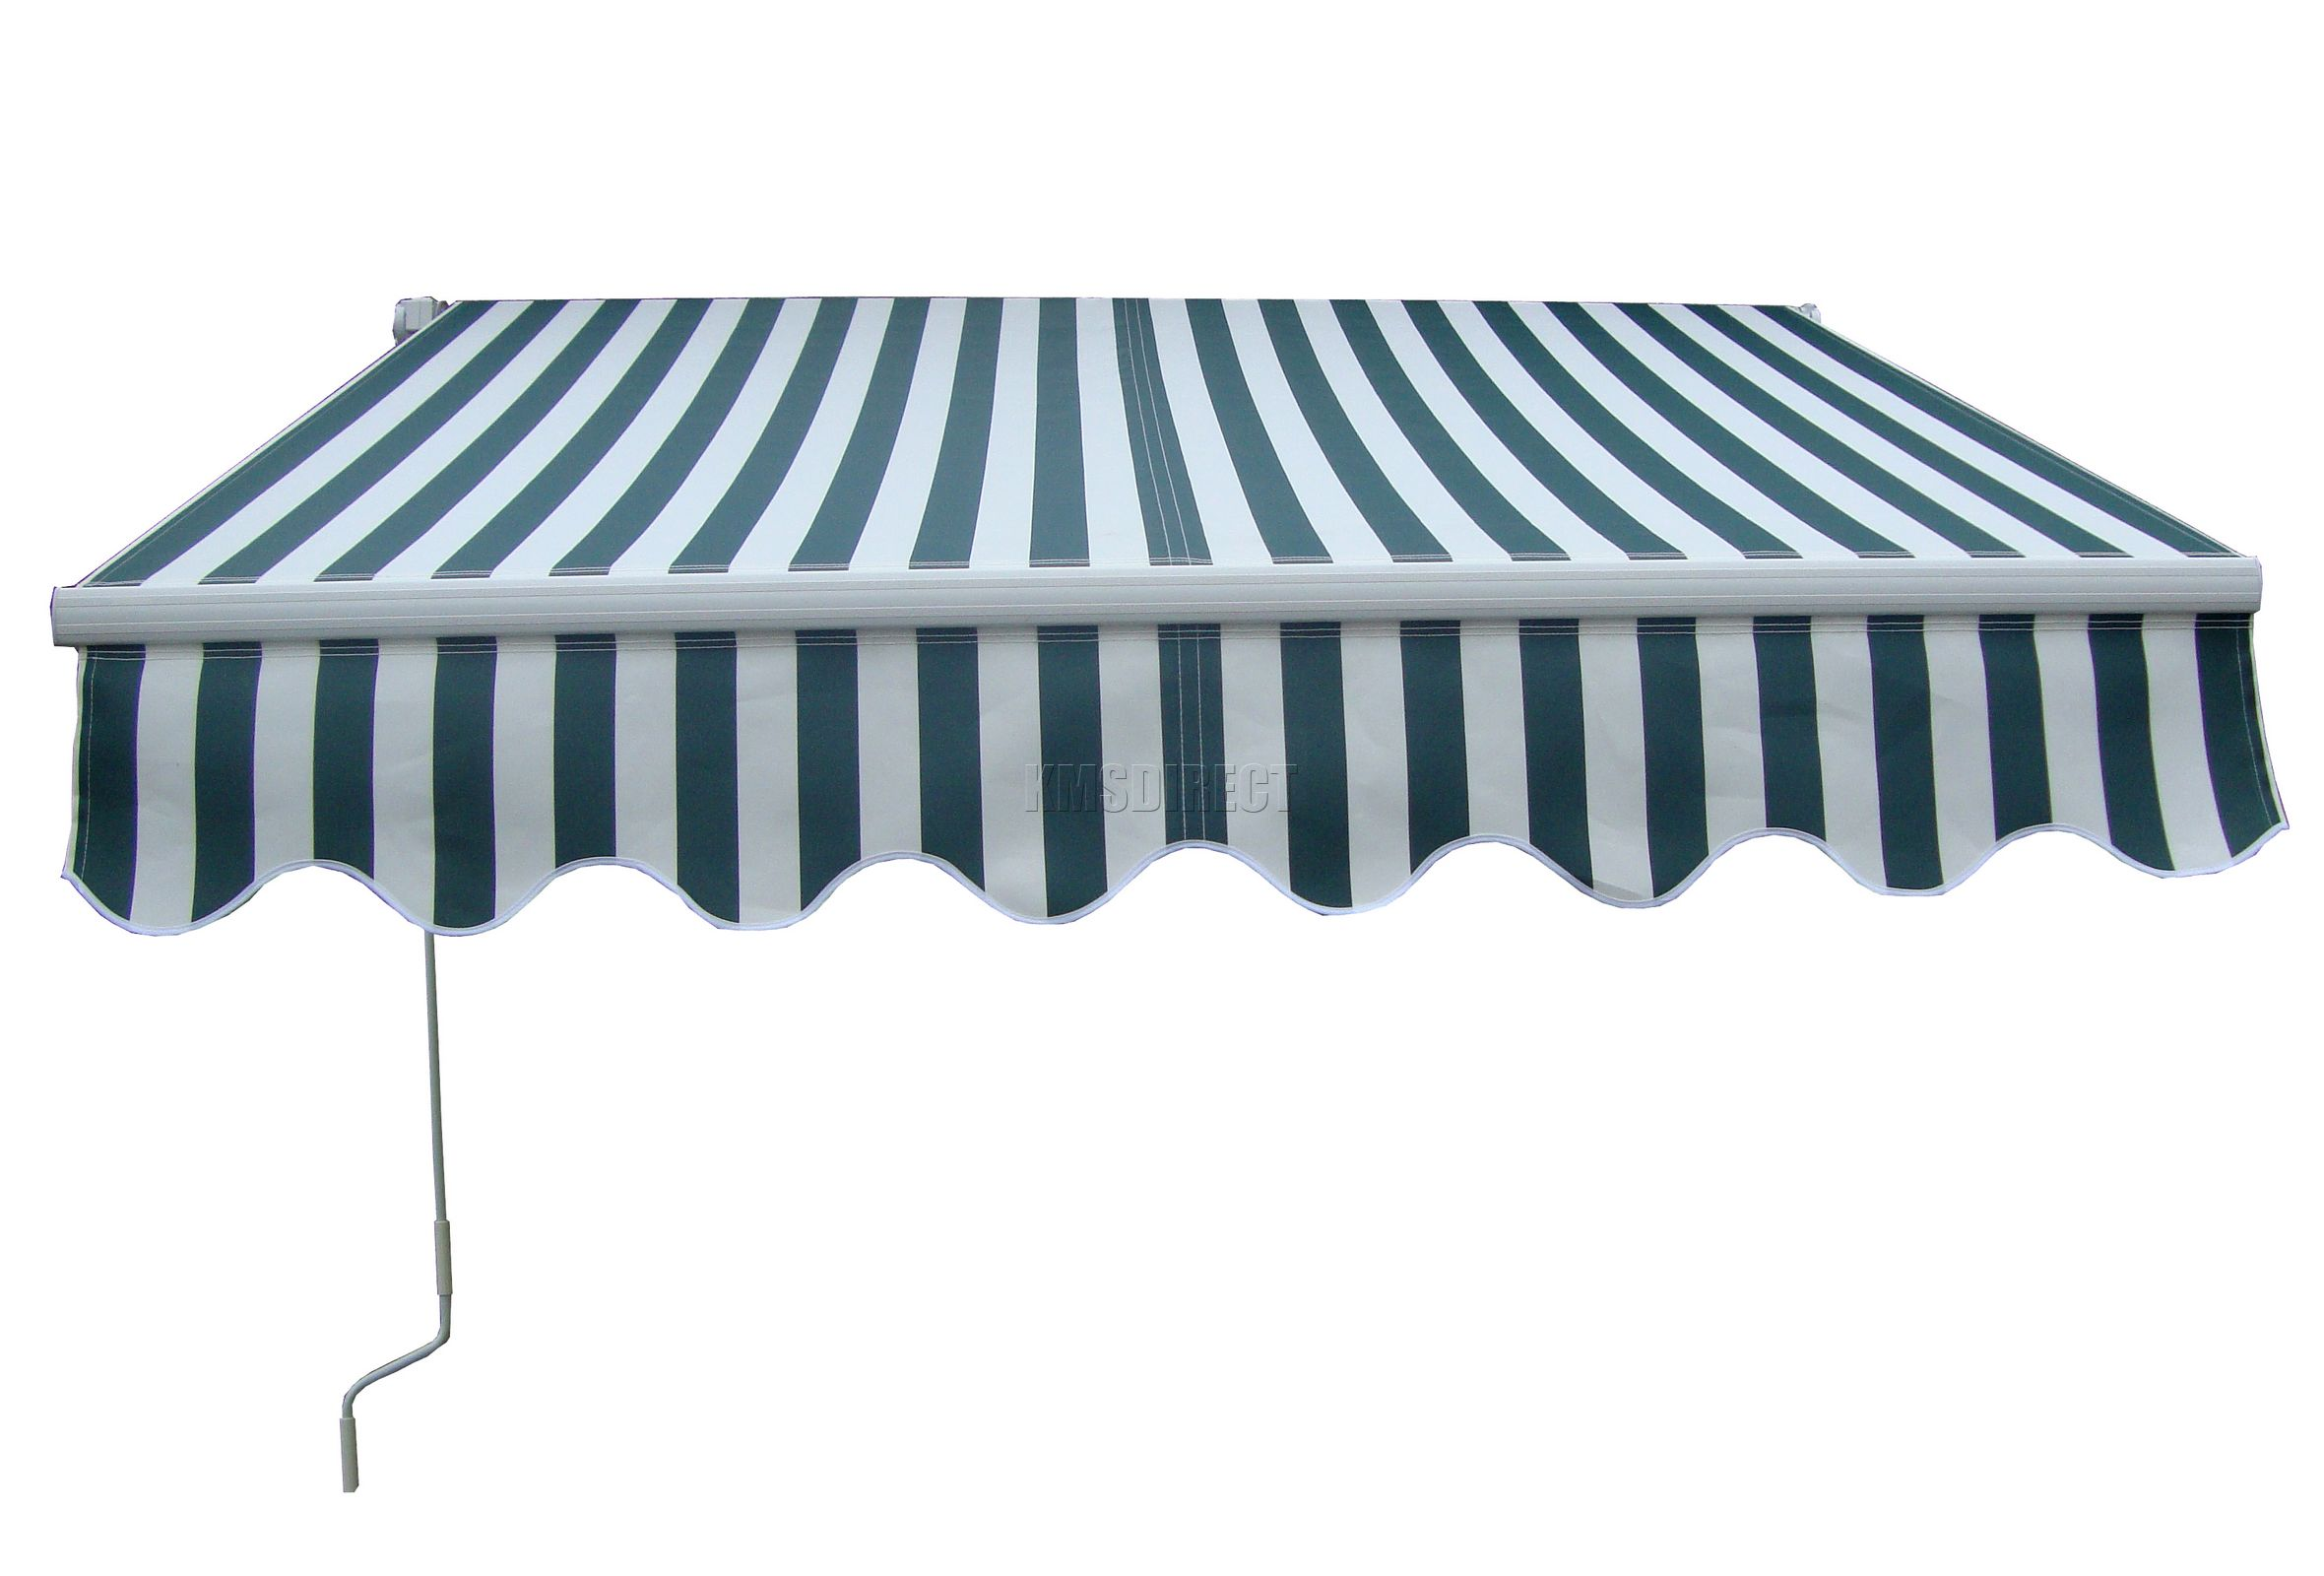 patio manual retractable awning canopy sun shade shelter. Black Bedroom Furniture Sets. Home Design Ideas